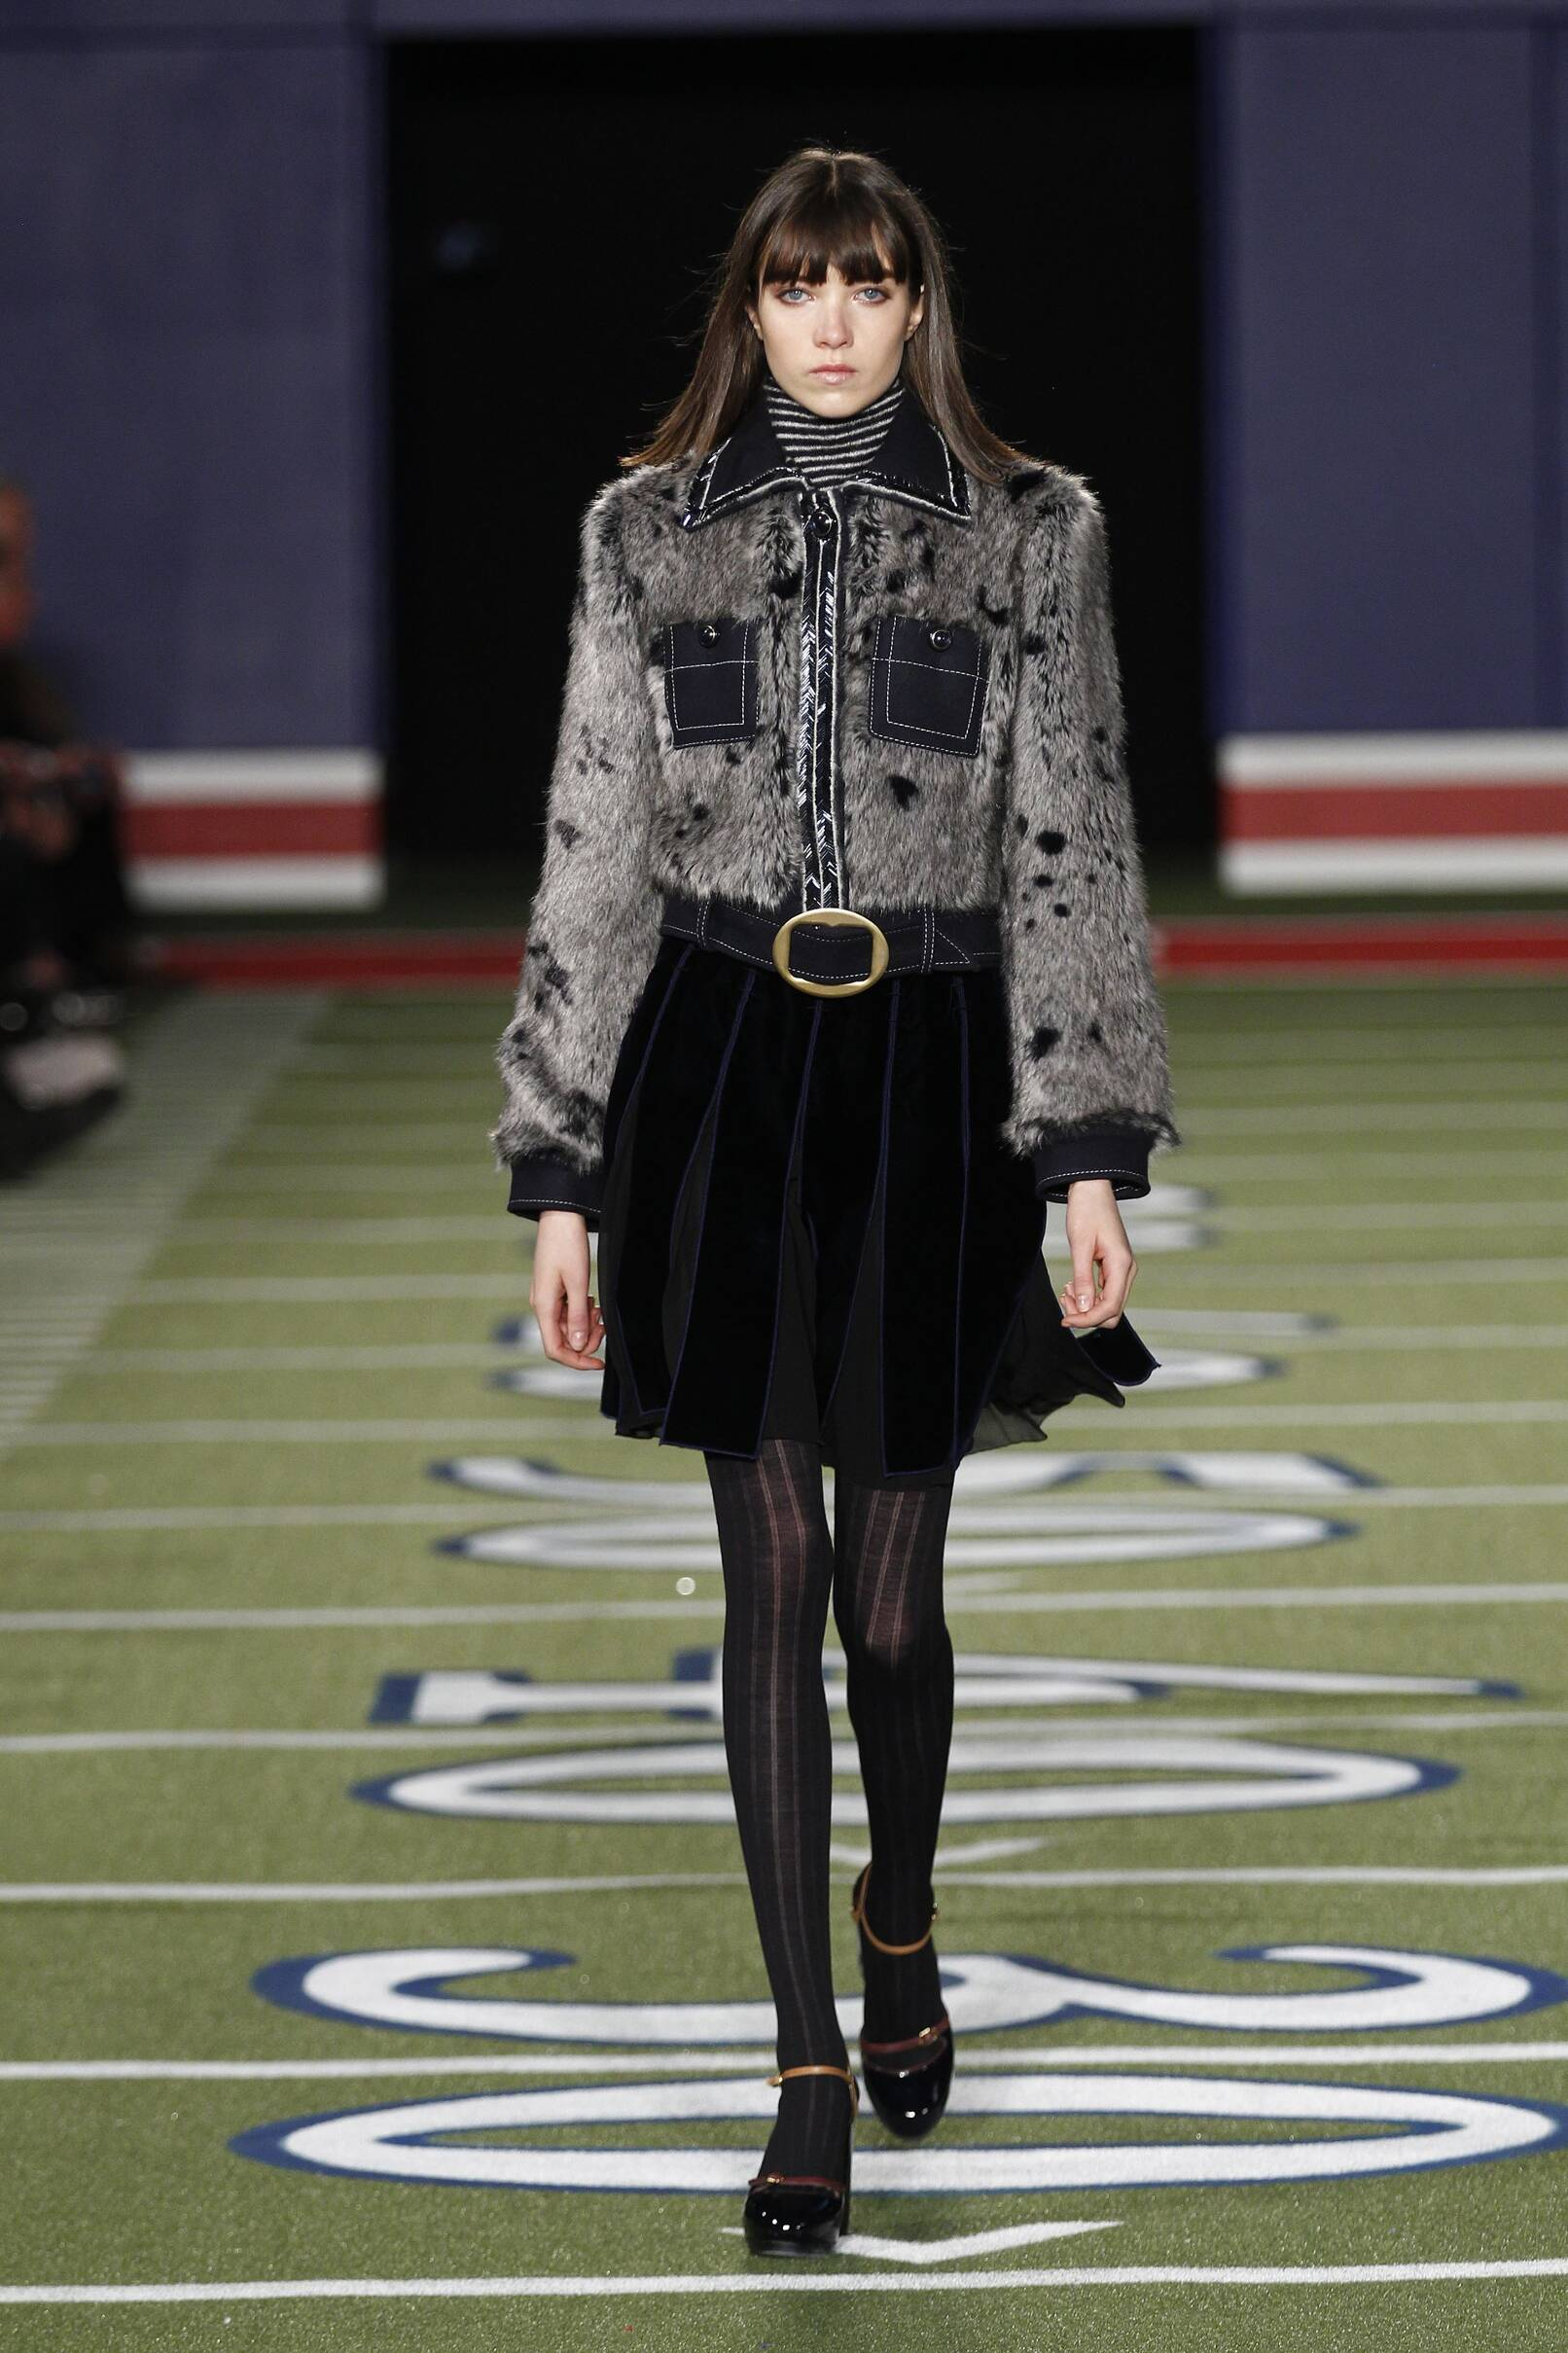 Tommy Hilfiger Collection Women's FW 2015 16 Fashion Show